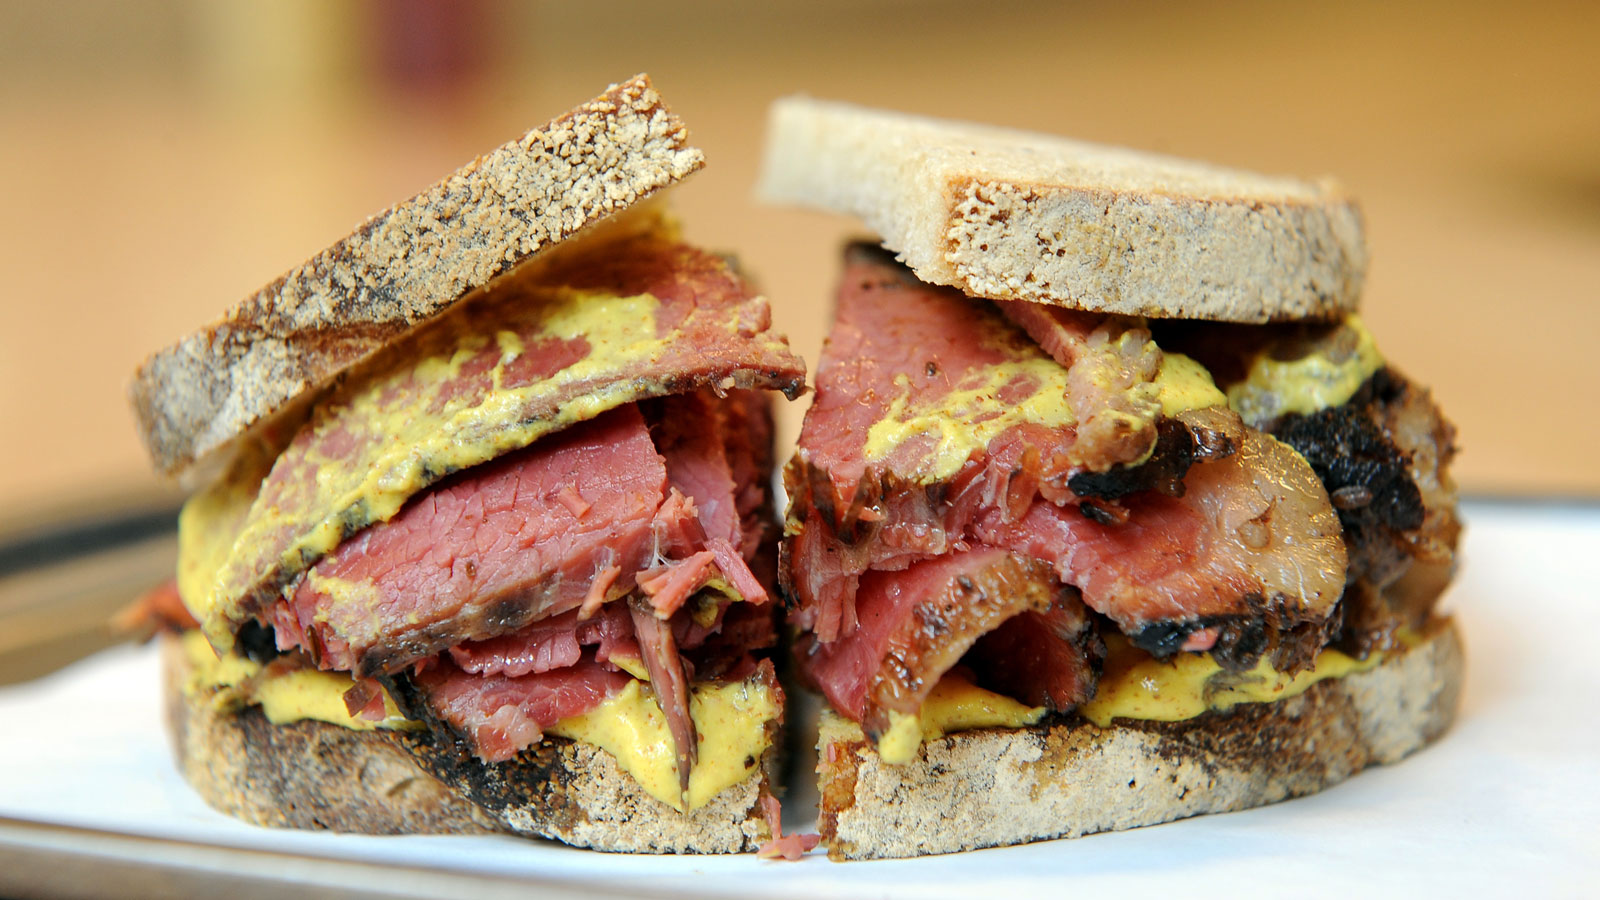 montreal-smoked-meat-differences-deli-meats-FT-BLOG0617.jpg